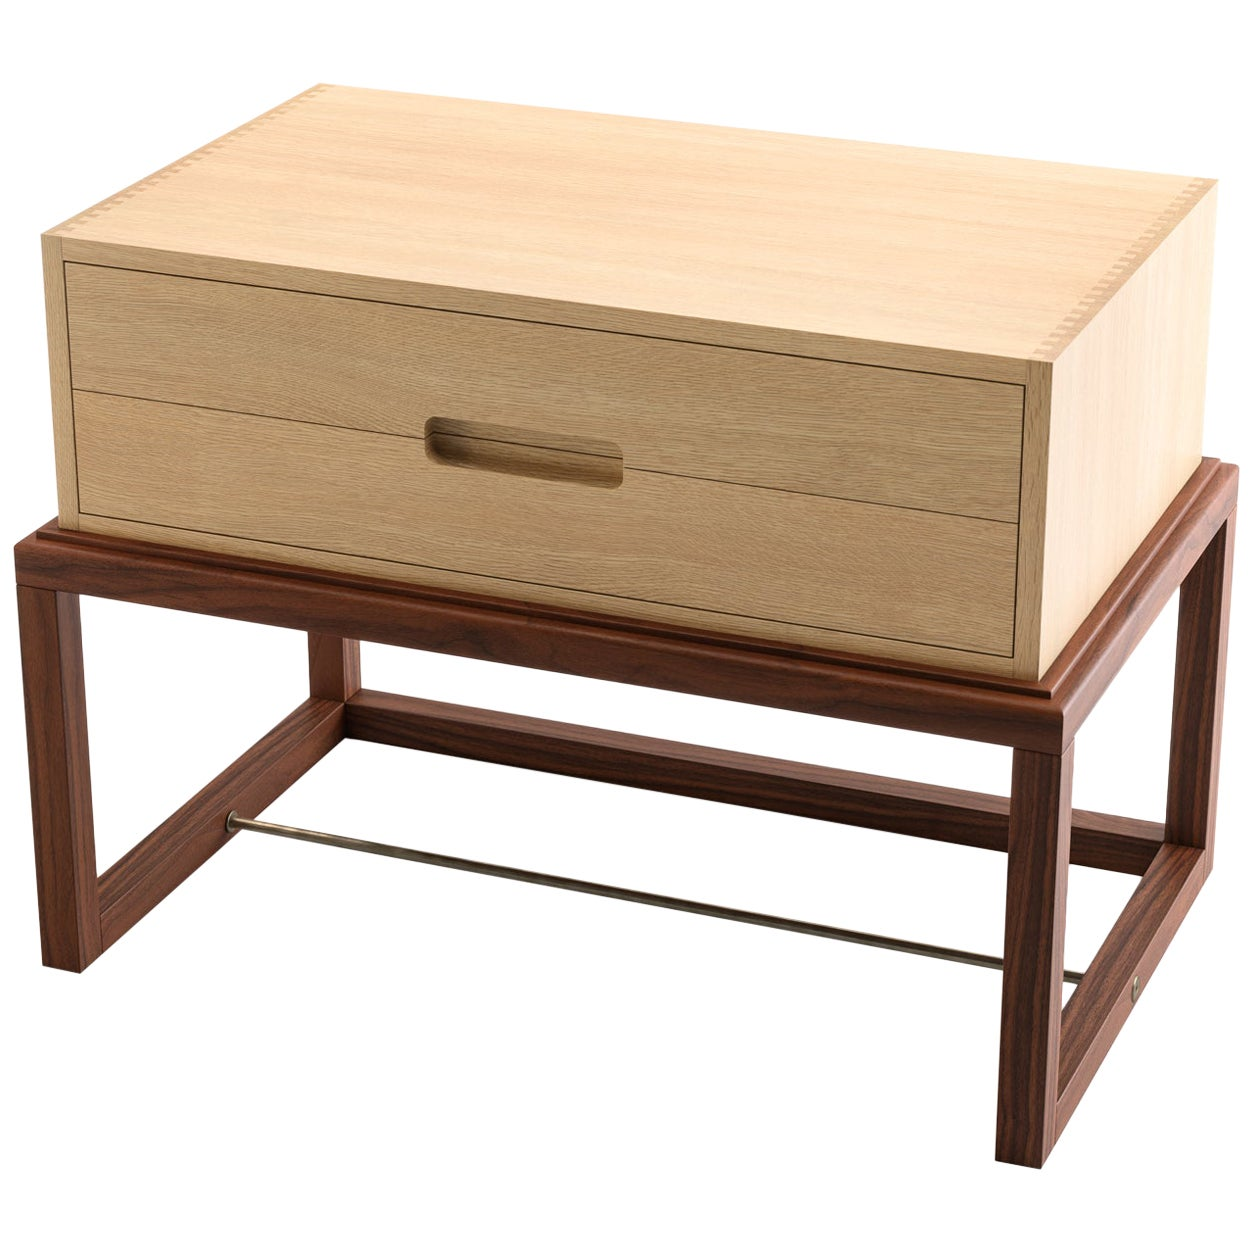 Oona Bedside or Side Table in Oak and Walnut with Antique Brass Fittings